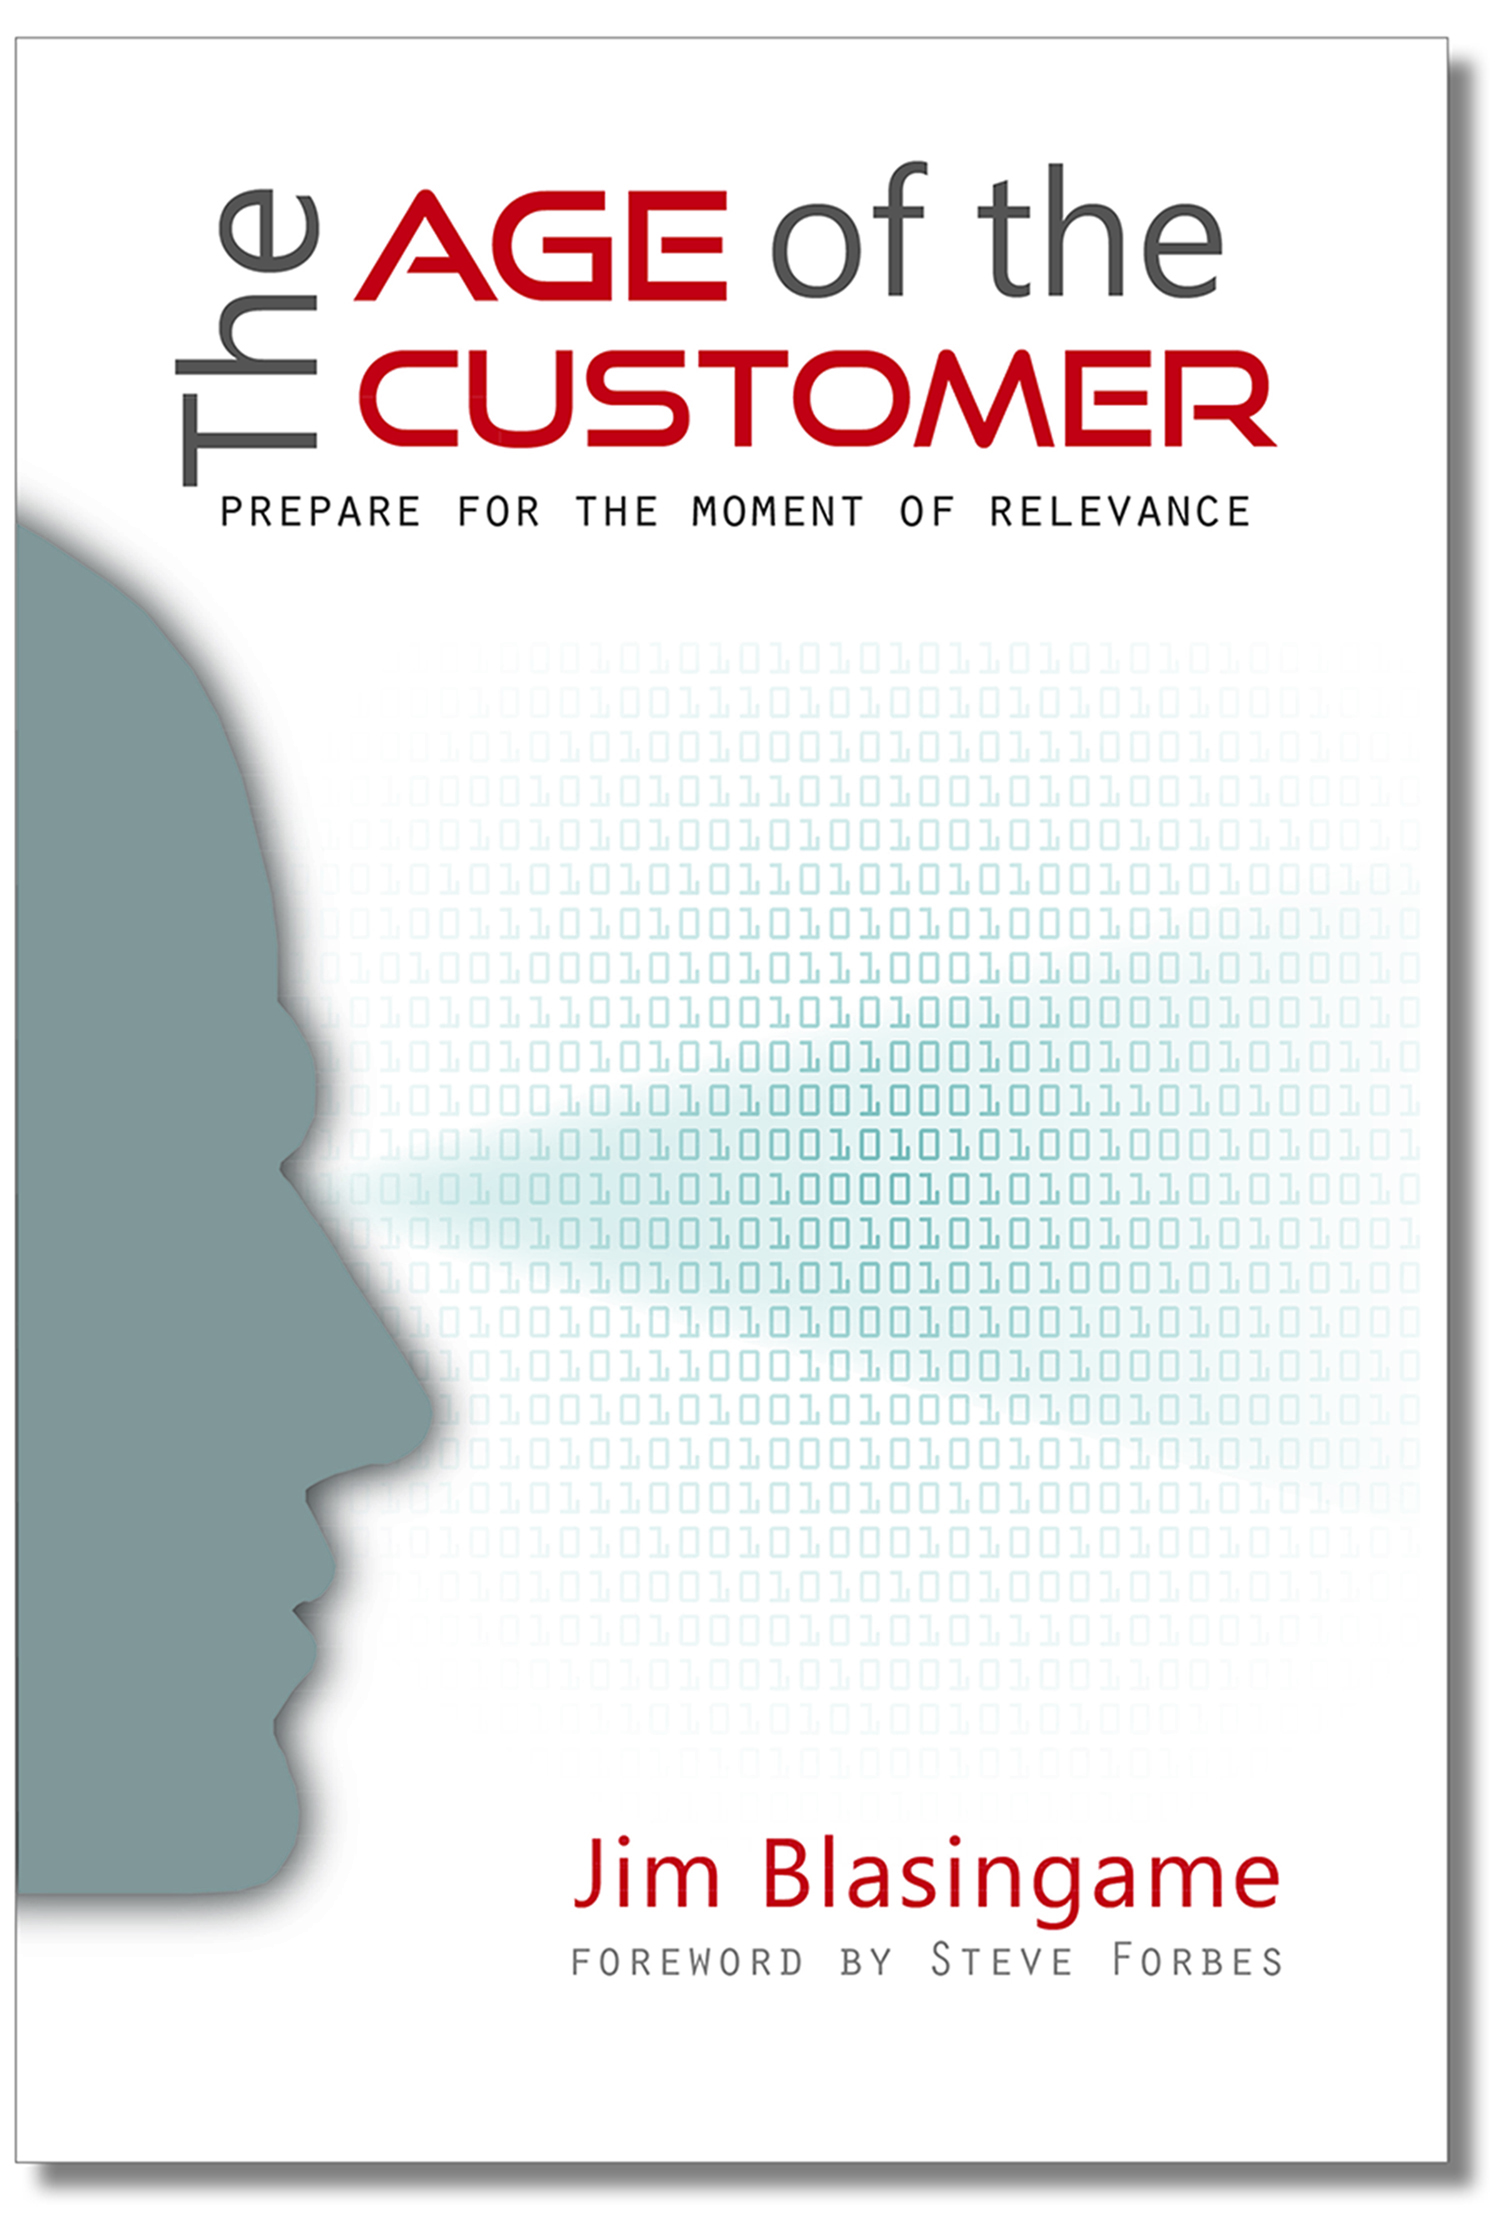 The-age-of-the-customer--prepare-for-the-moment-of-relevancejpg-original